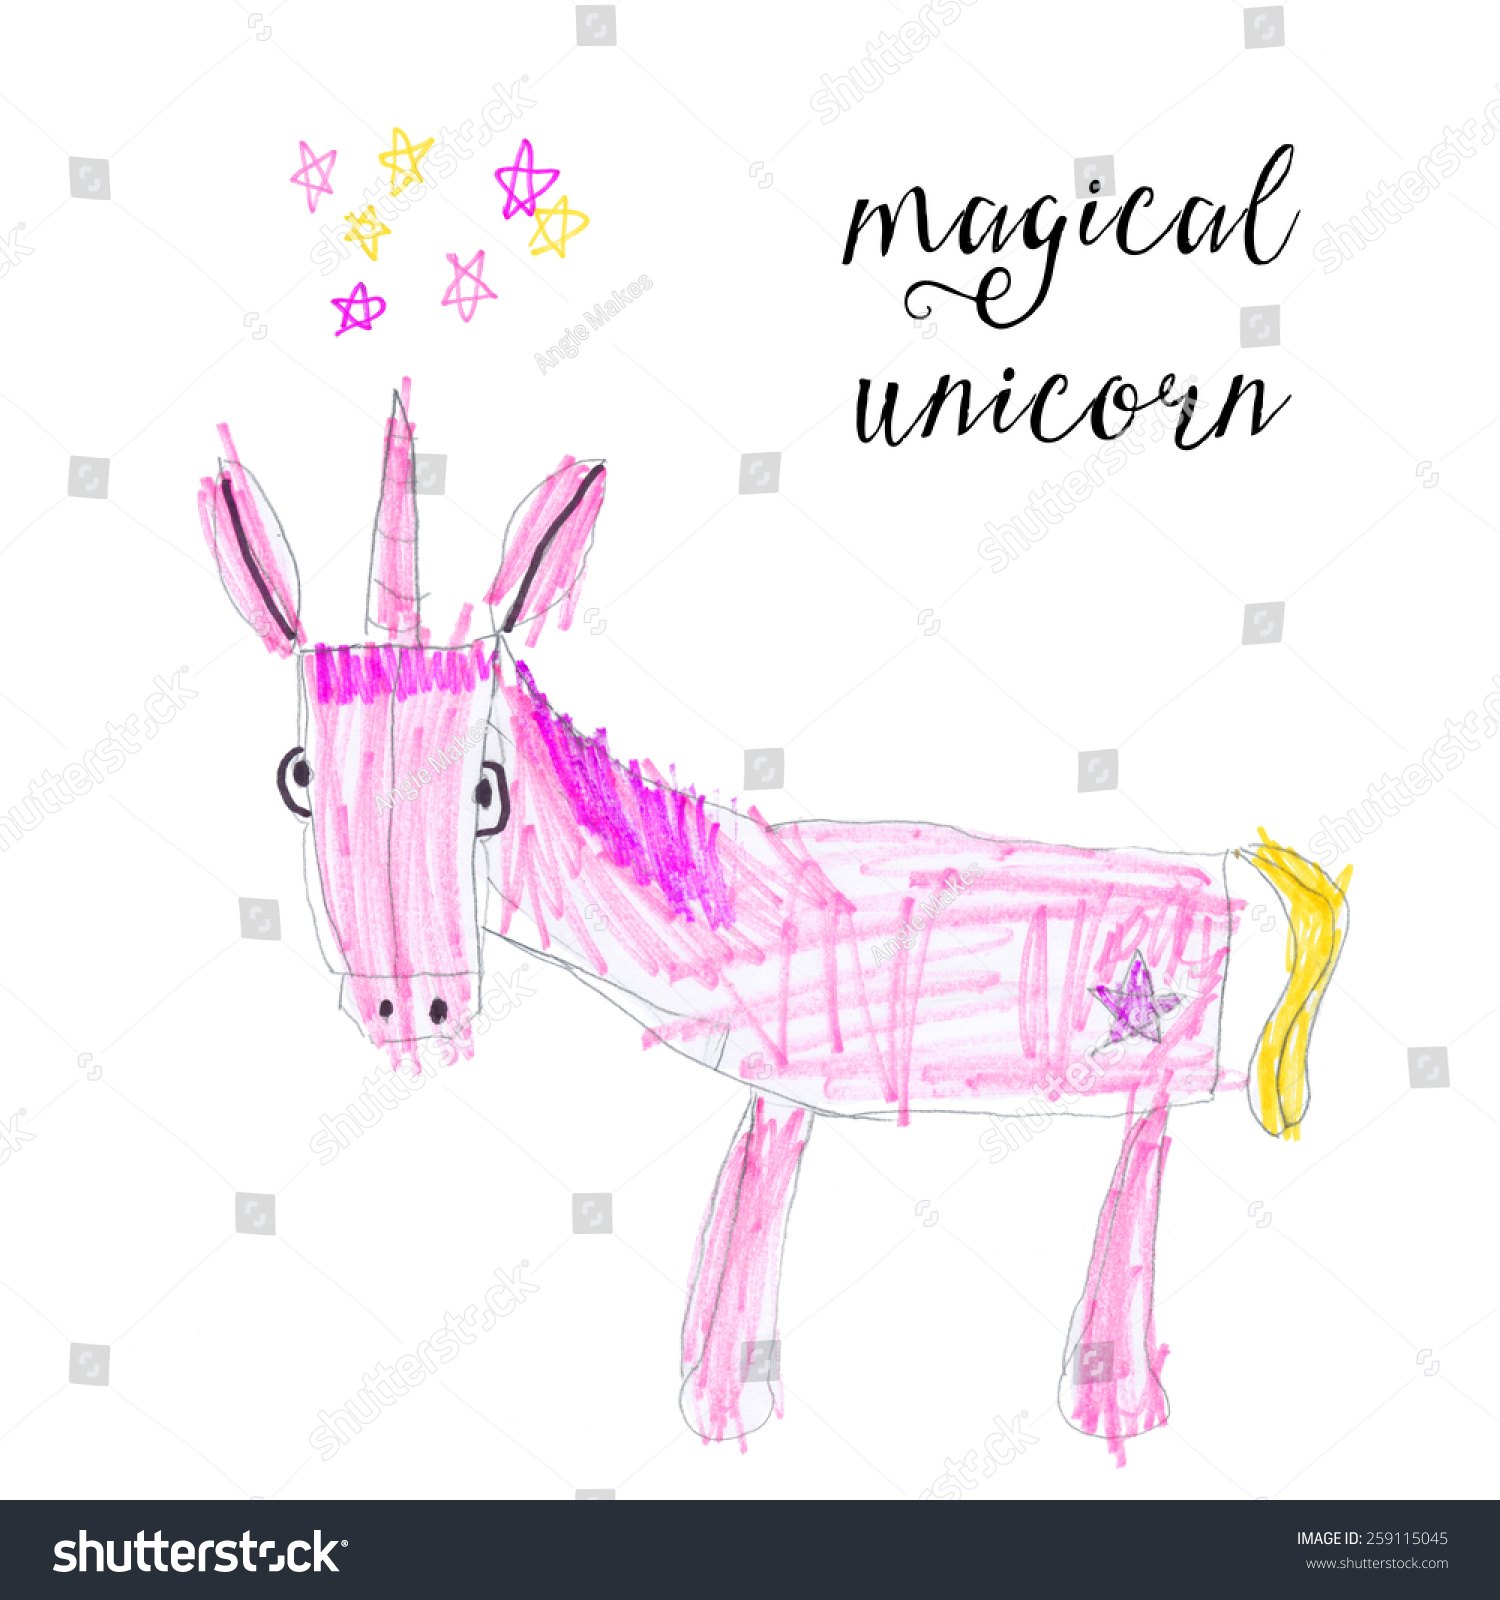 Uncategorized Childrens Drawing childrens drawing pink unicorn stars stock illustration of a with marker drawing